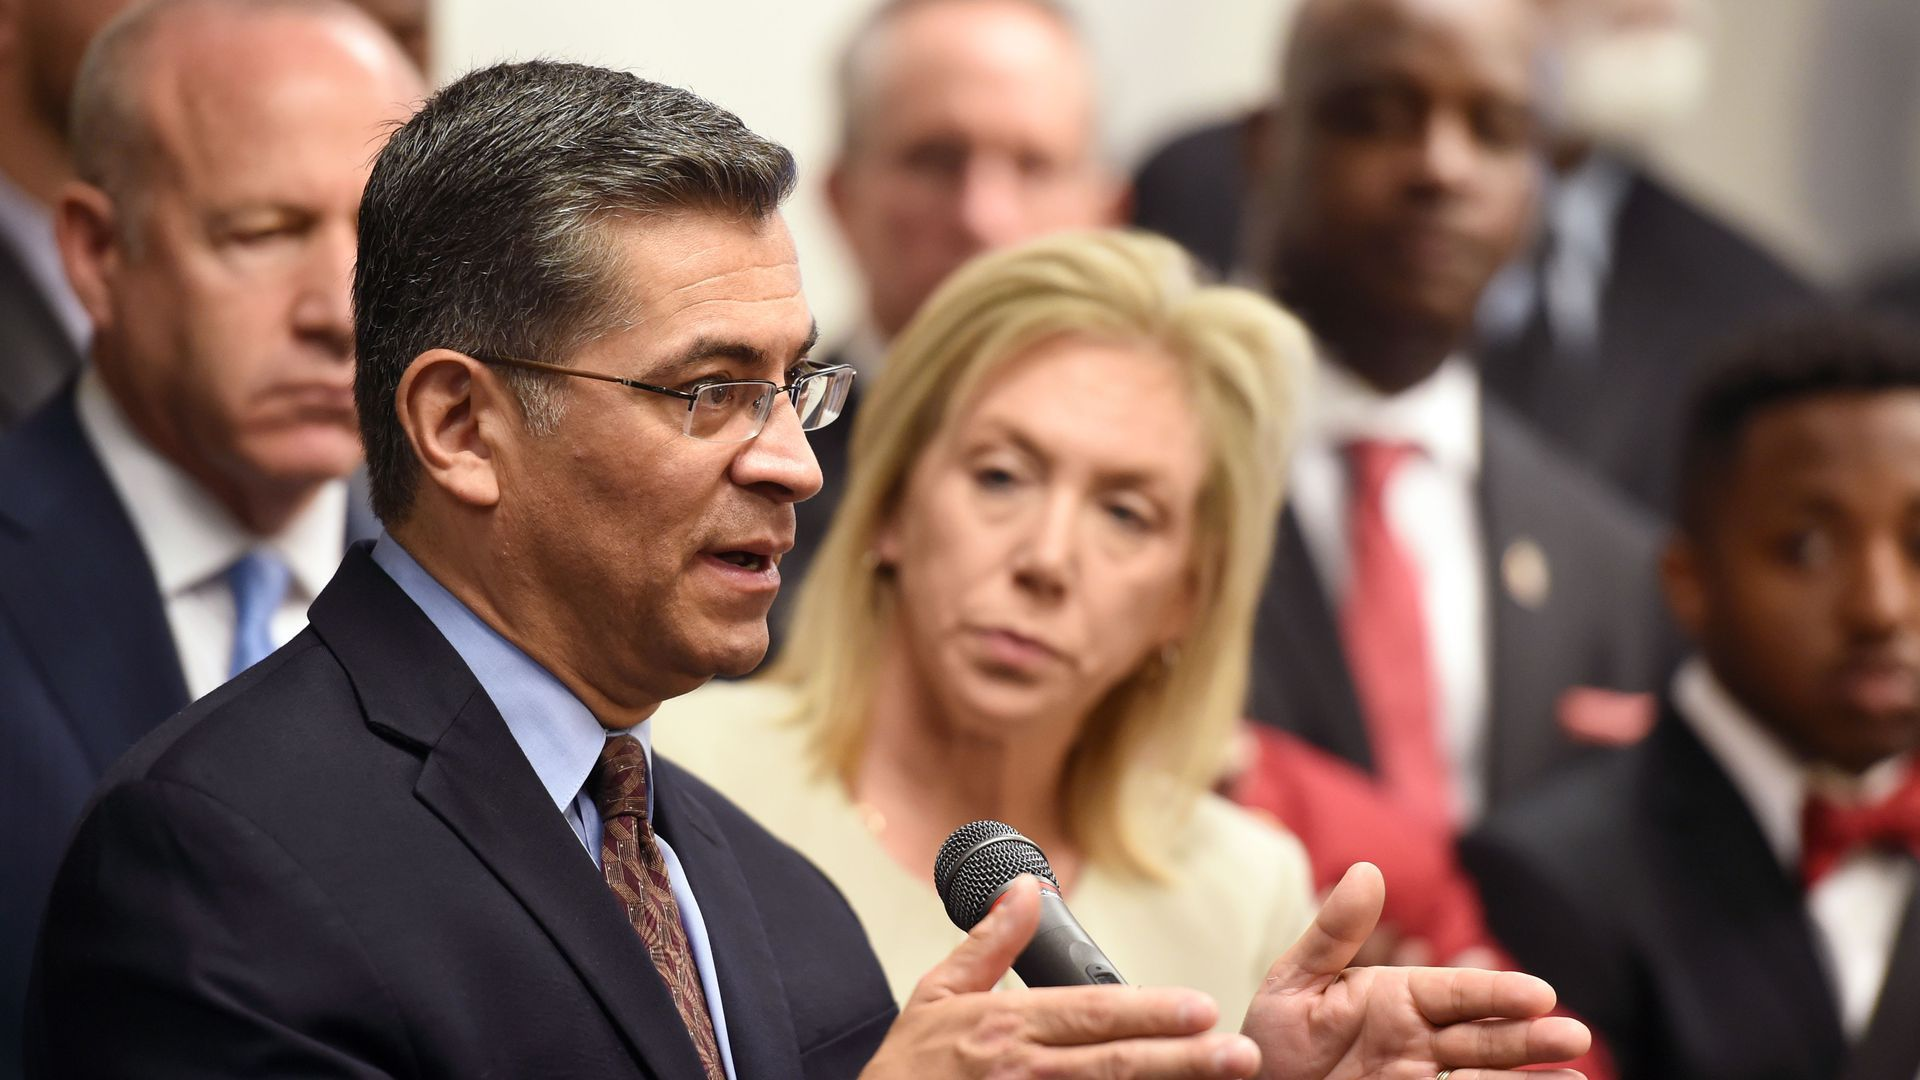 Xavier Becerra speaking at a press conference.